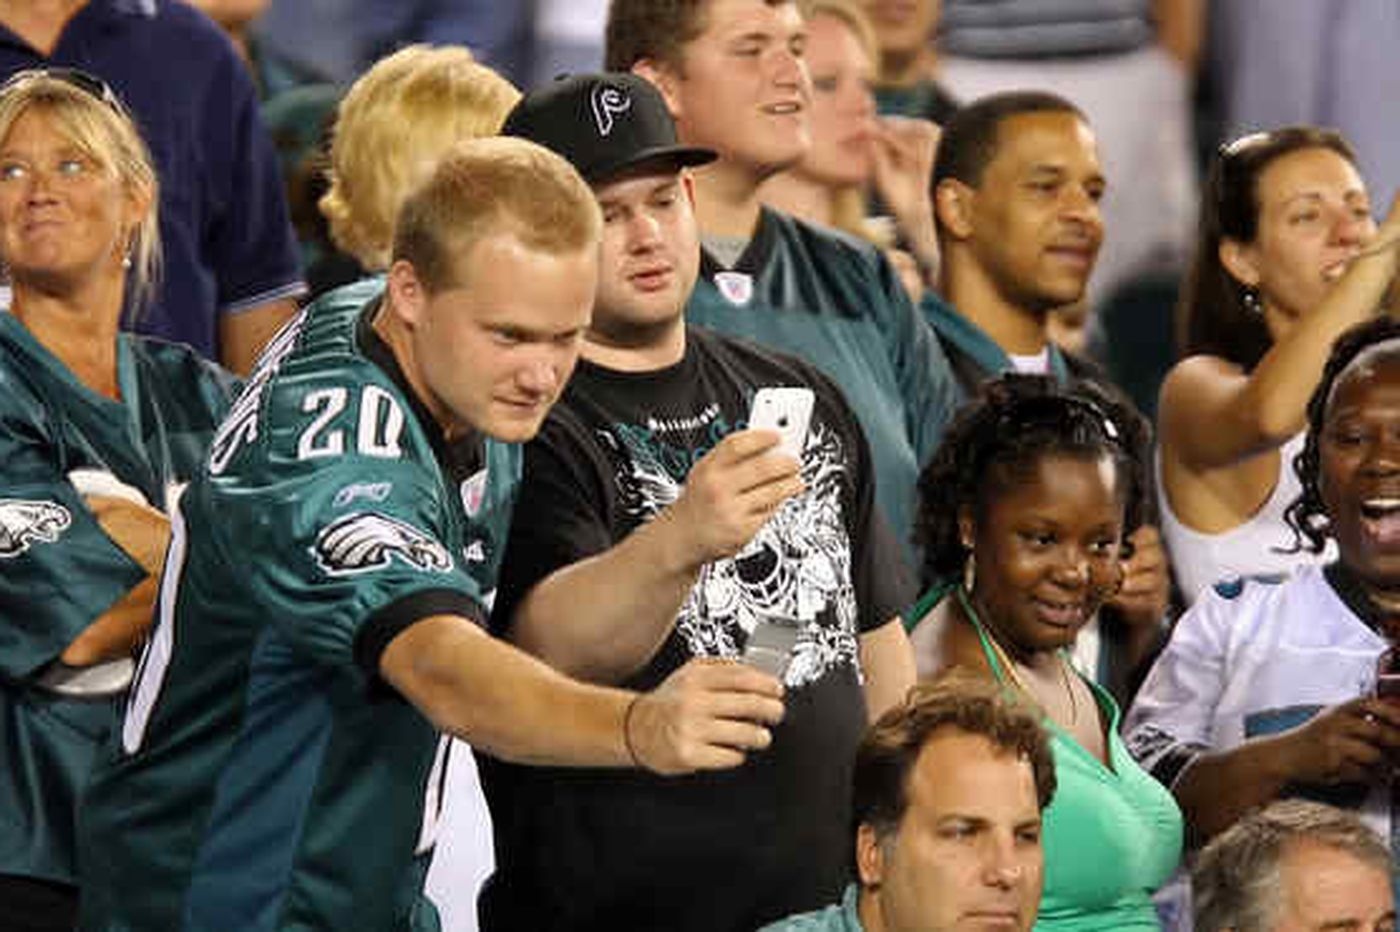 Clash of protesters over Vick debut? Not rally